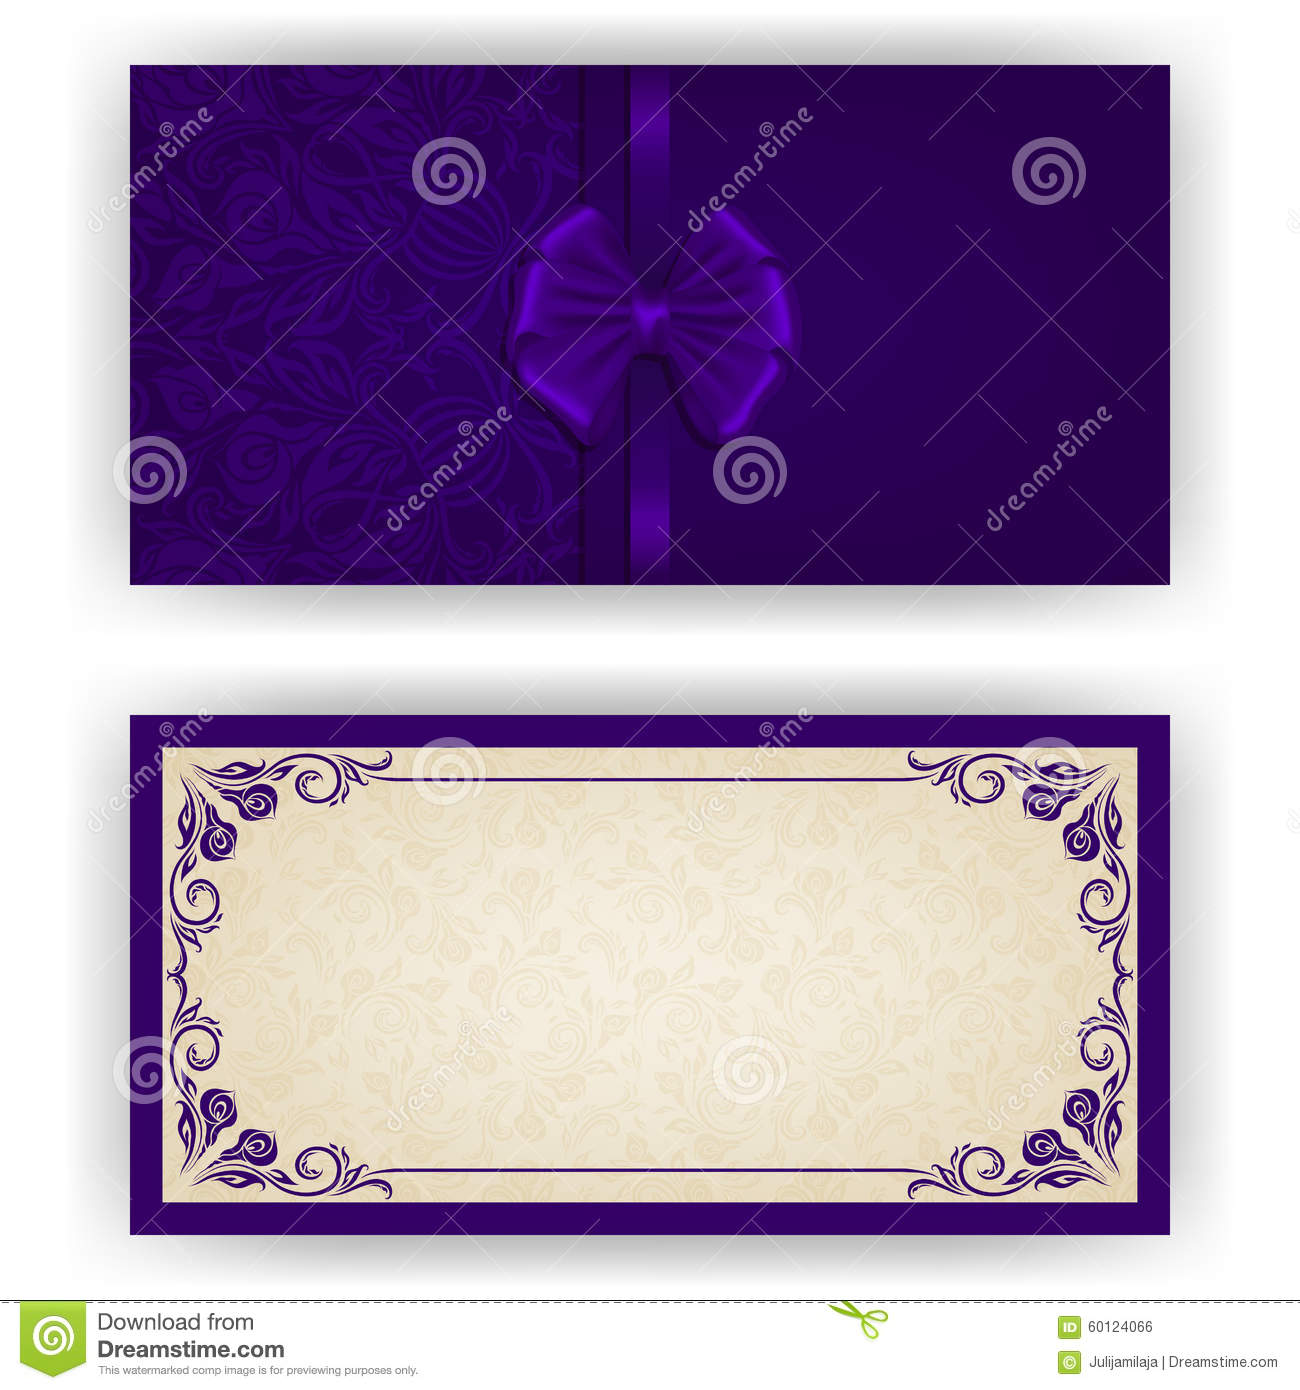 Wedding Gift Card Text : Elegant template for luxury wedding invitation, greeting, gift card ...